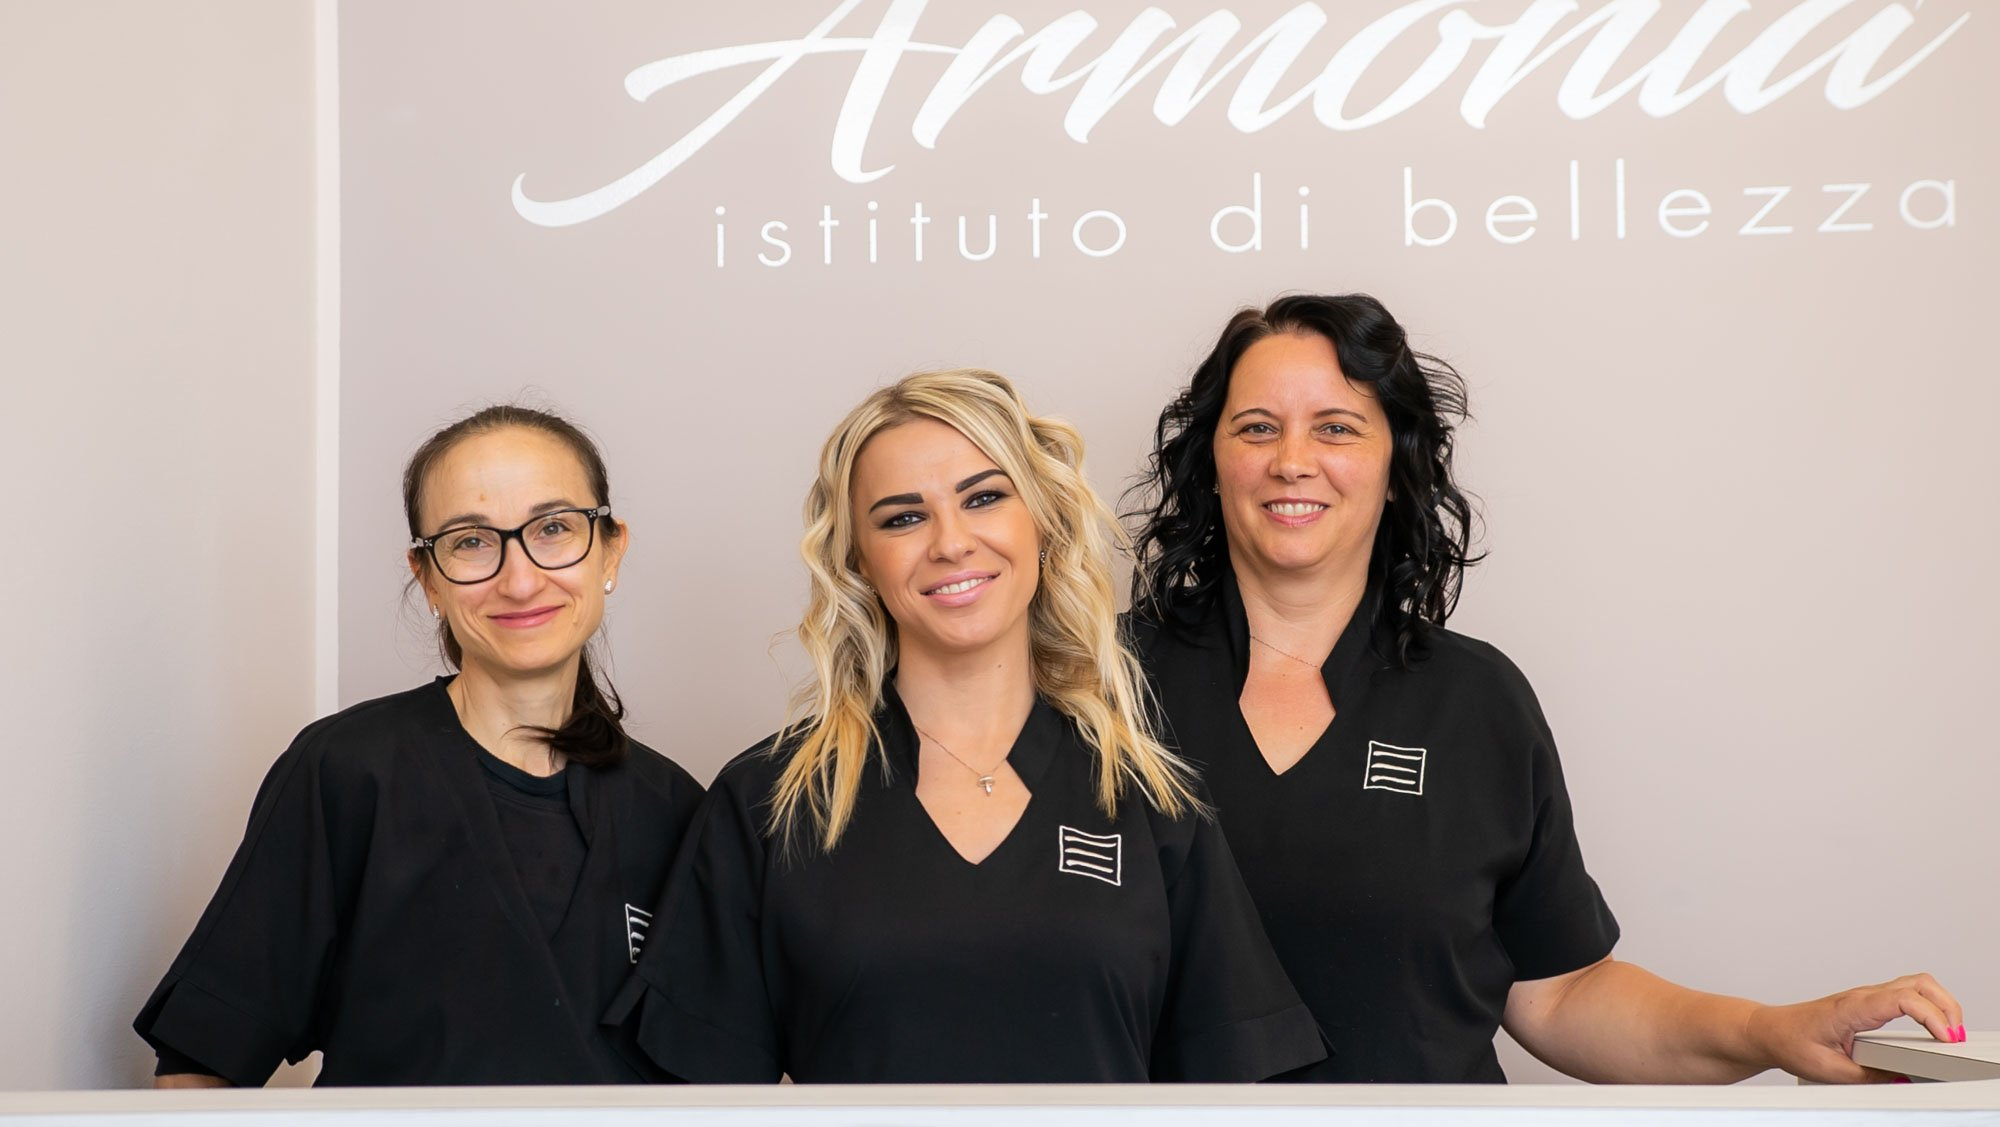 Armonia Istituto di bellezza Team